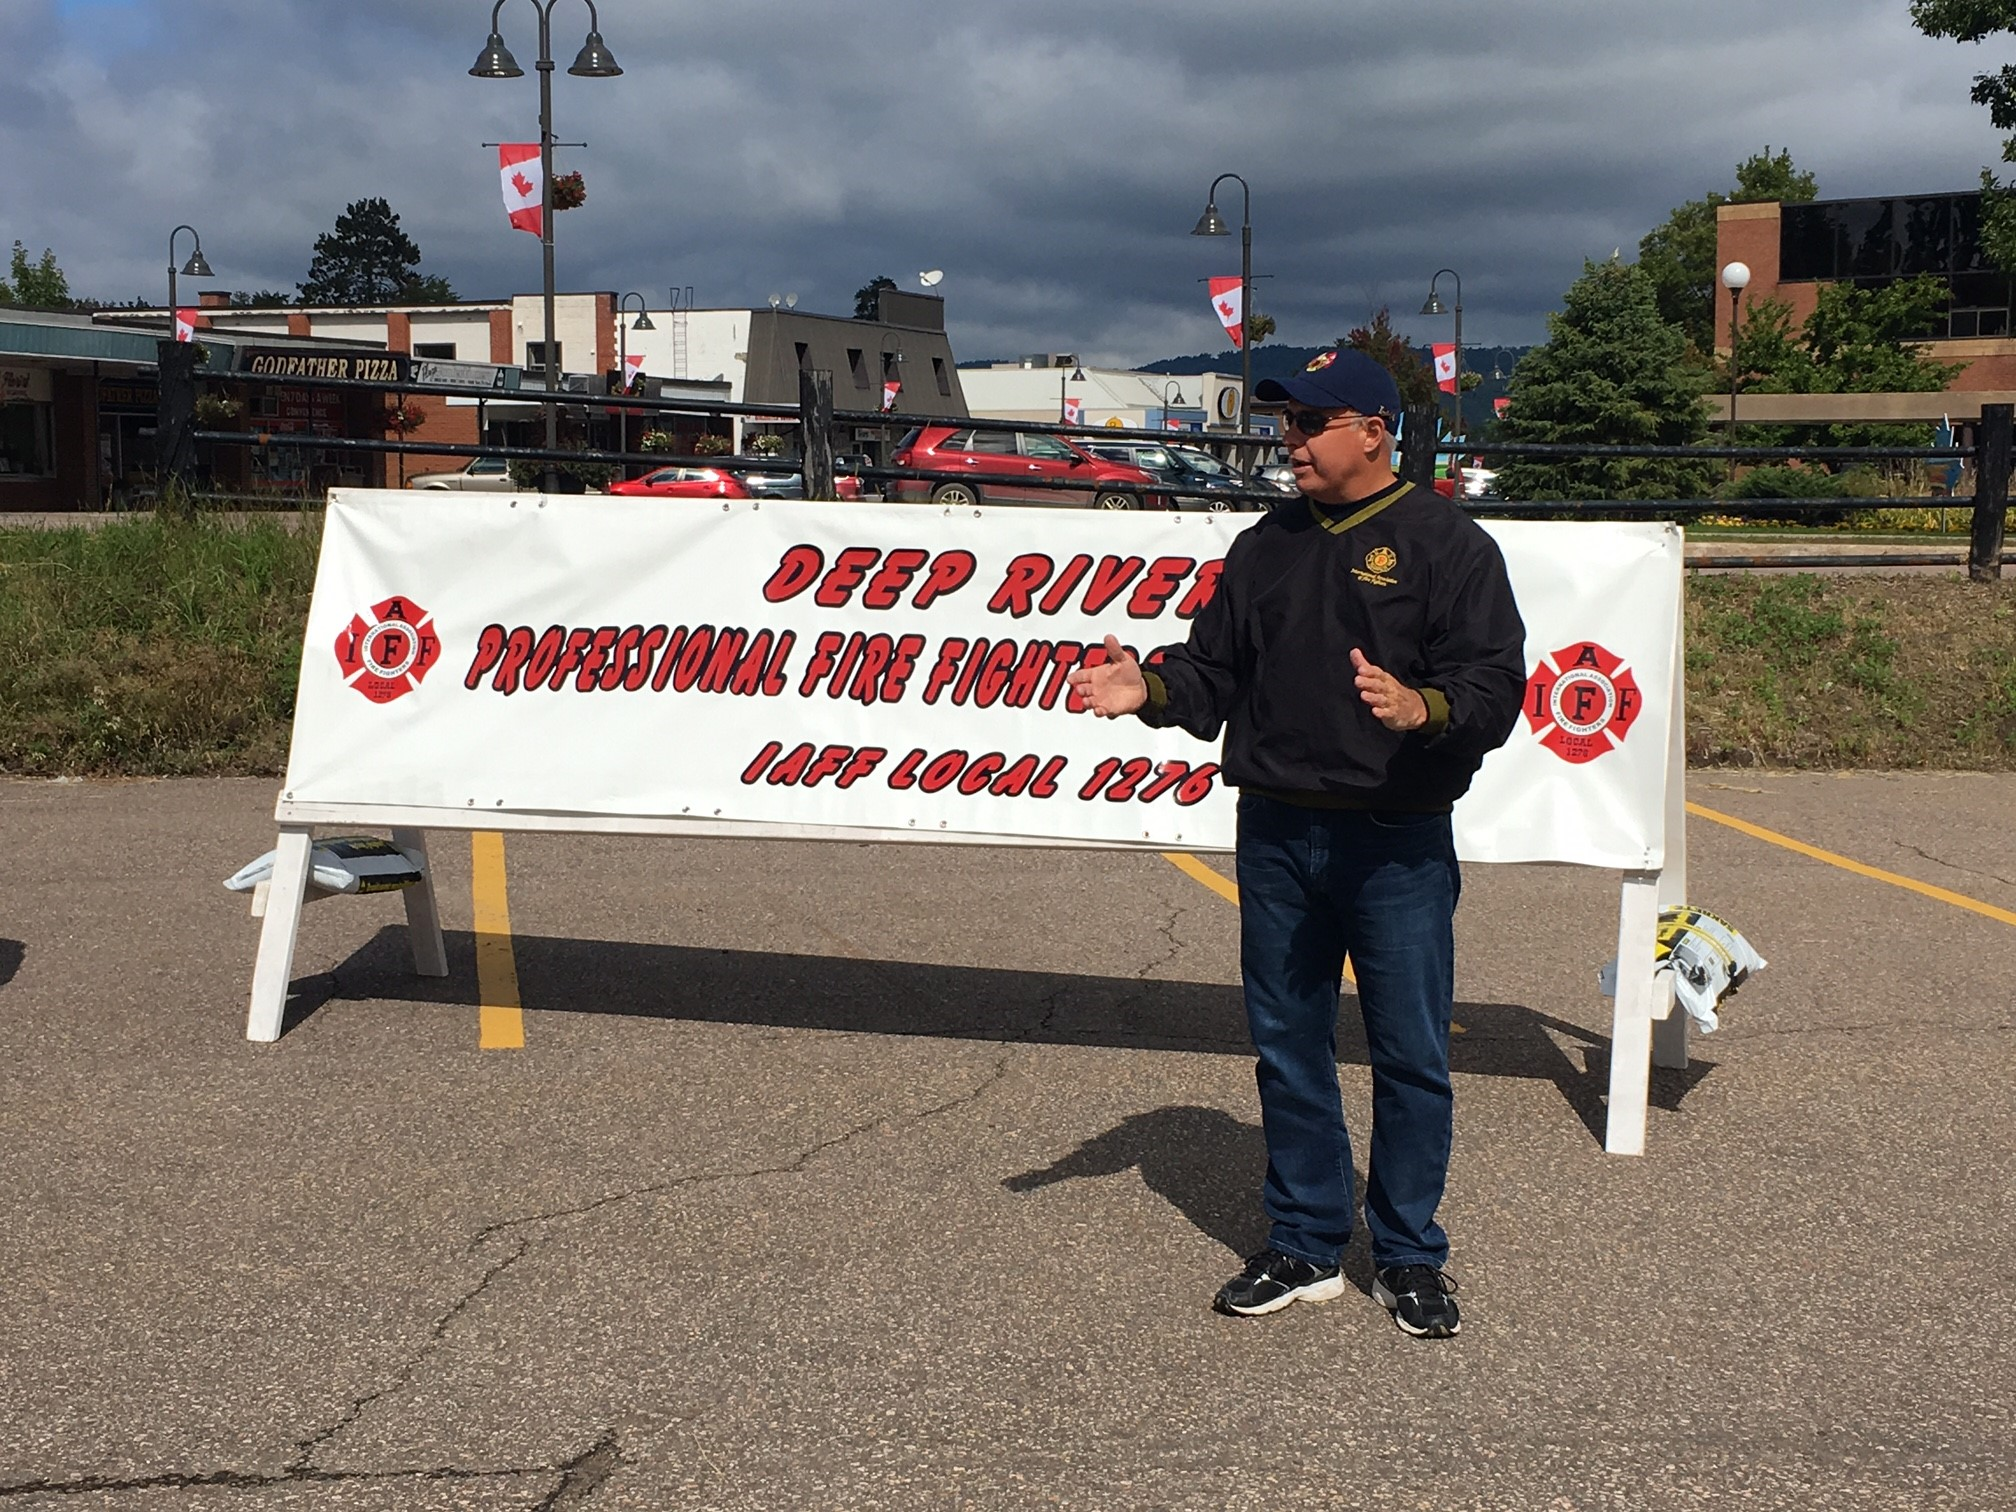 IAFF_13th_DVP_Leblanc_addressing_crowd.jpg